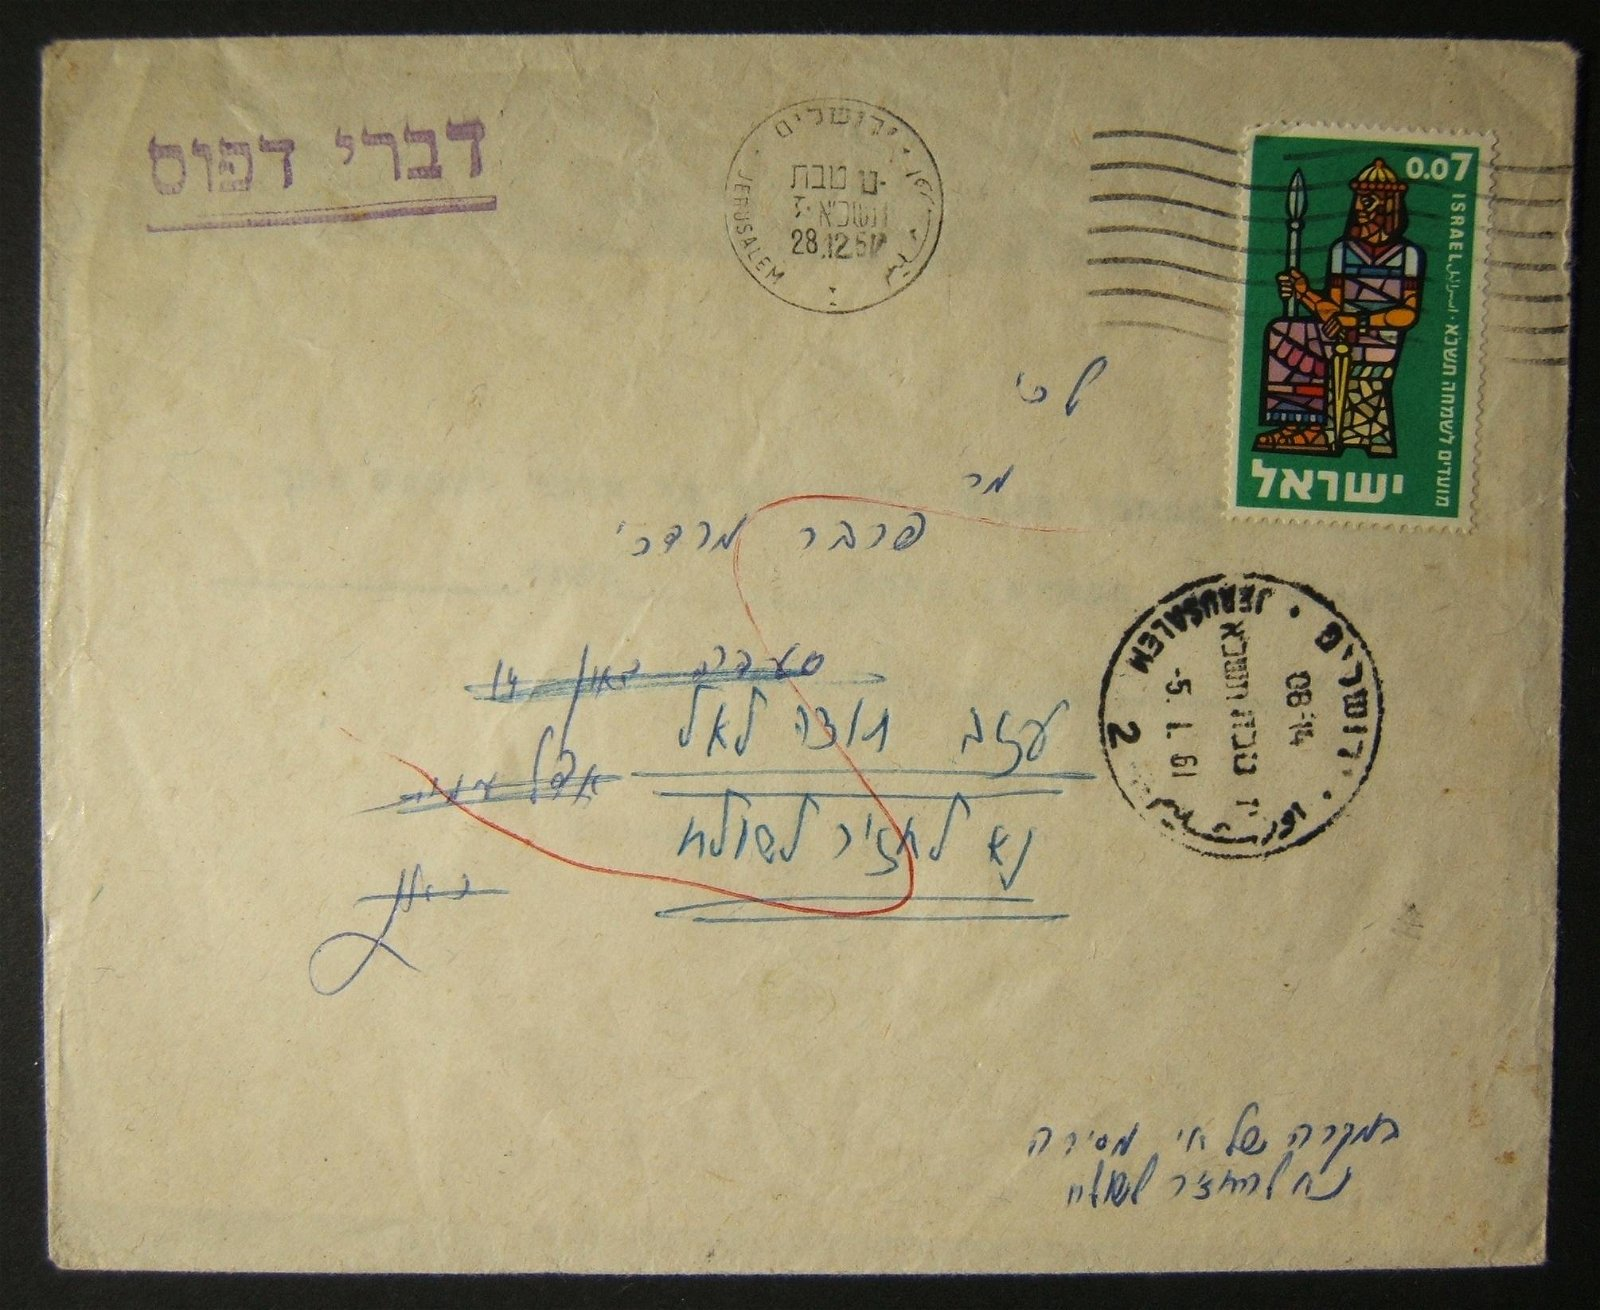 1961 JLEM printed matter cv taxed for requested return